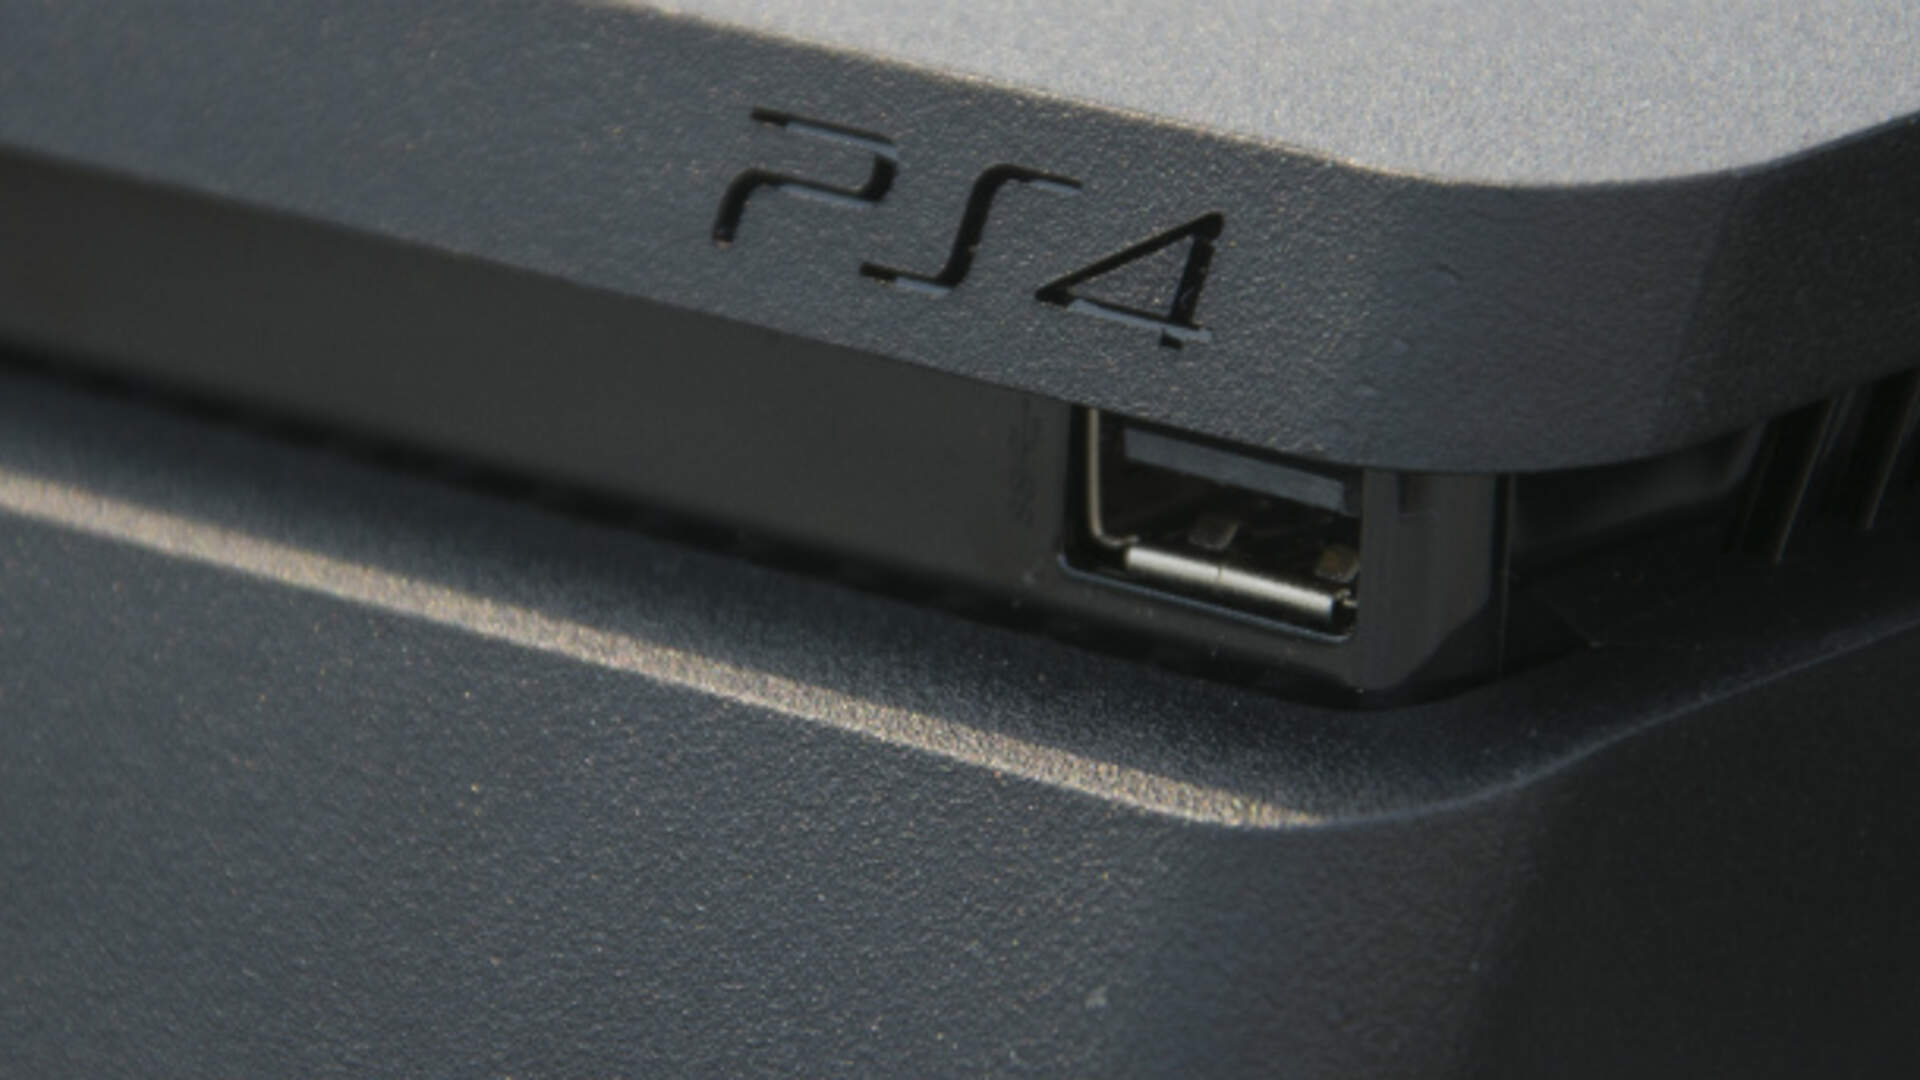 PS4 Sells 6.2 Million Systems Over 2016 Holidays, Crossing 53.4 Million Worldwide